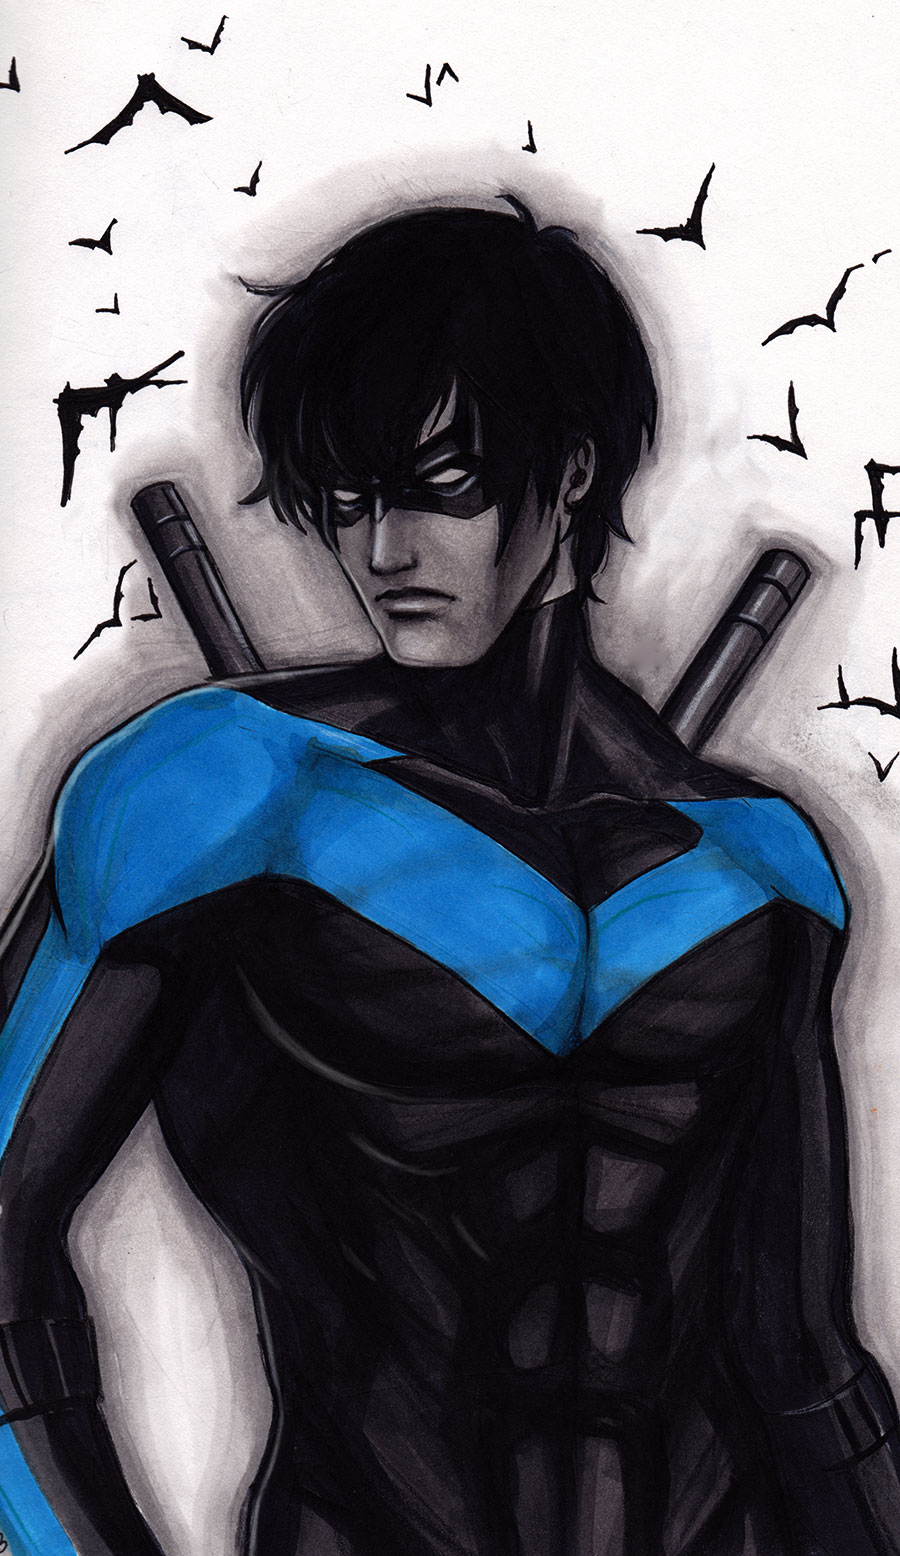 Nightwing Sketch by Protokitty